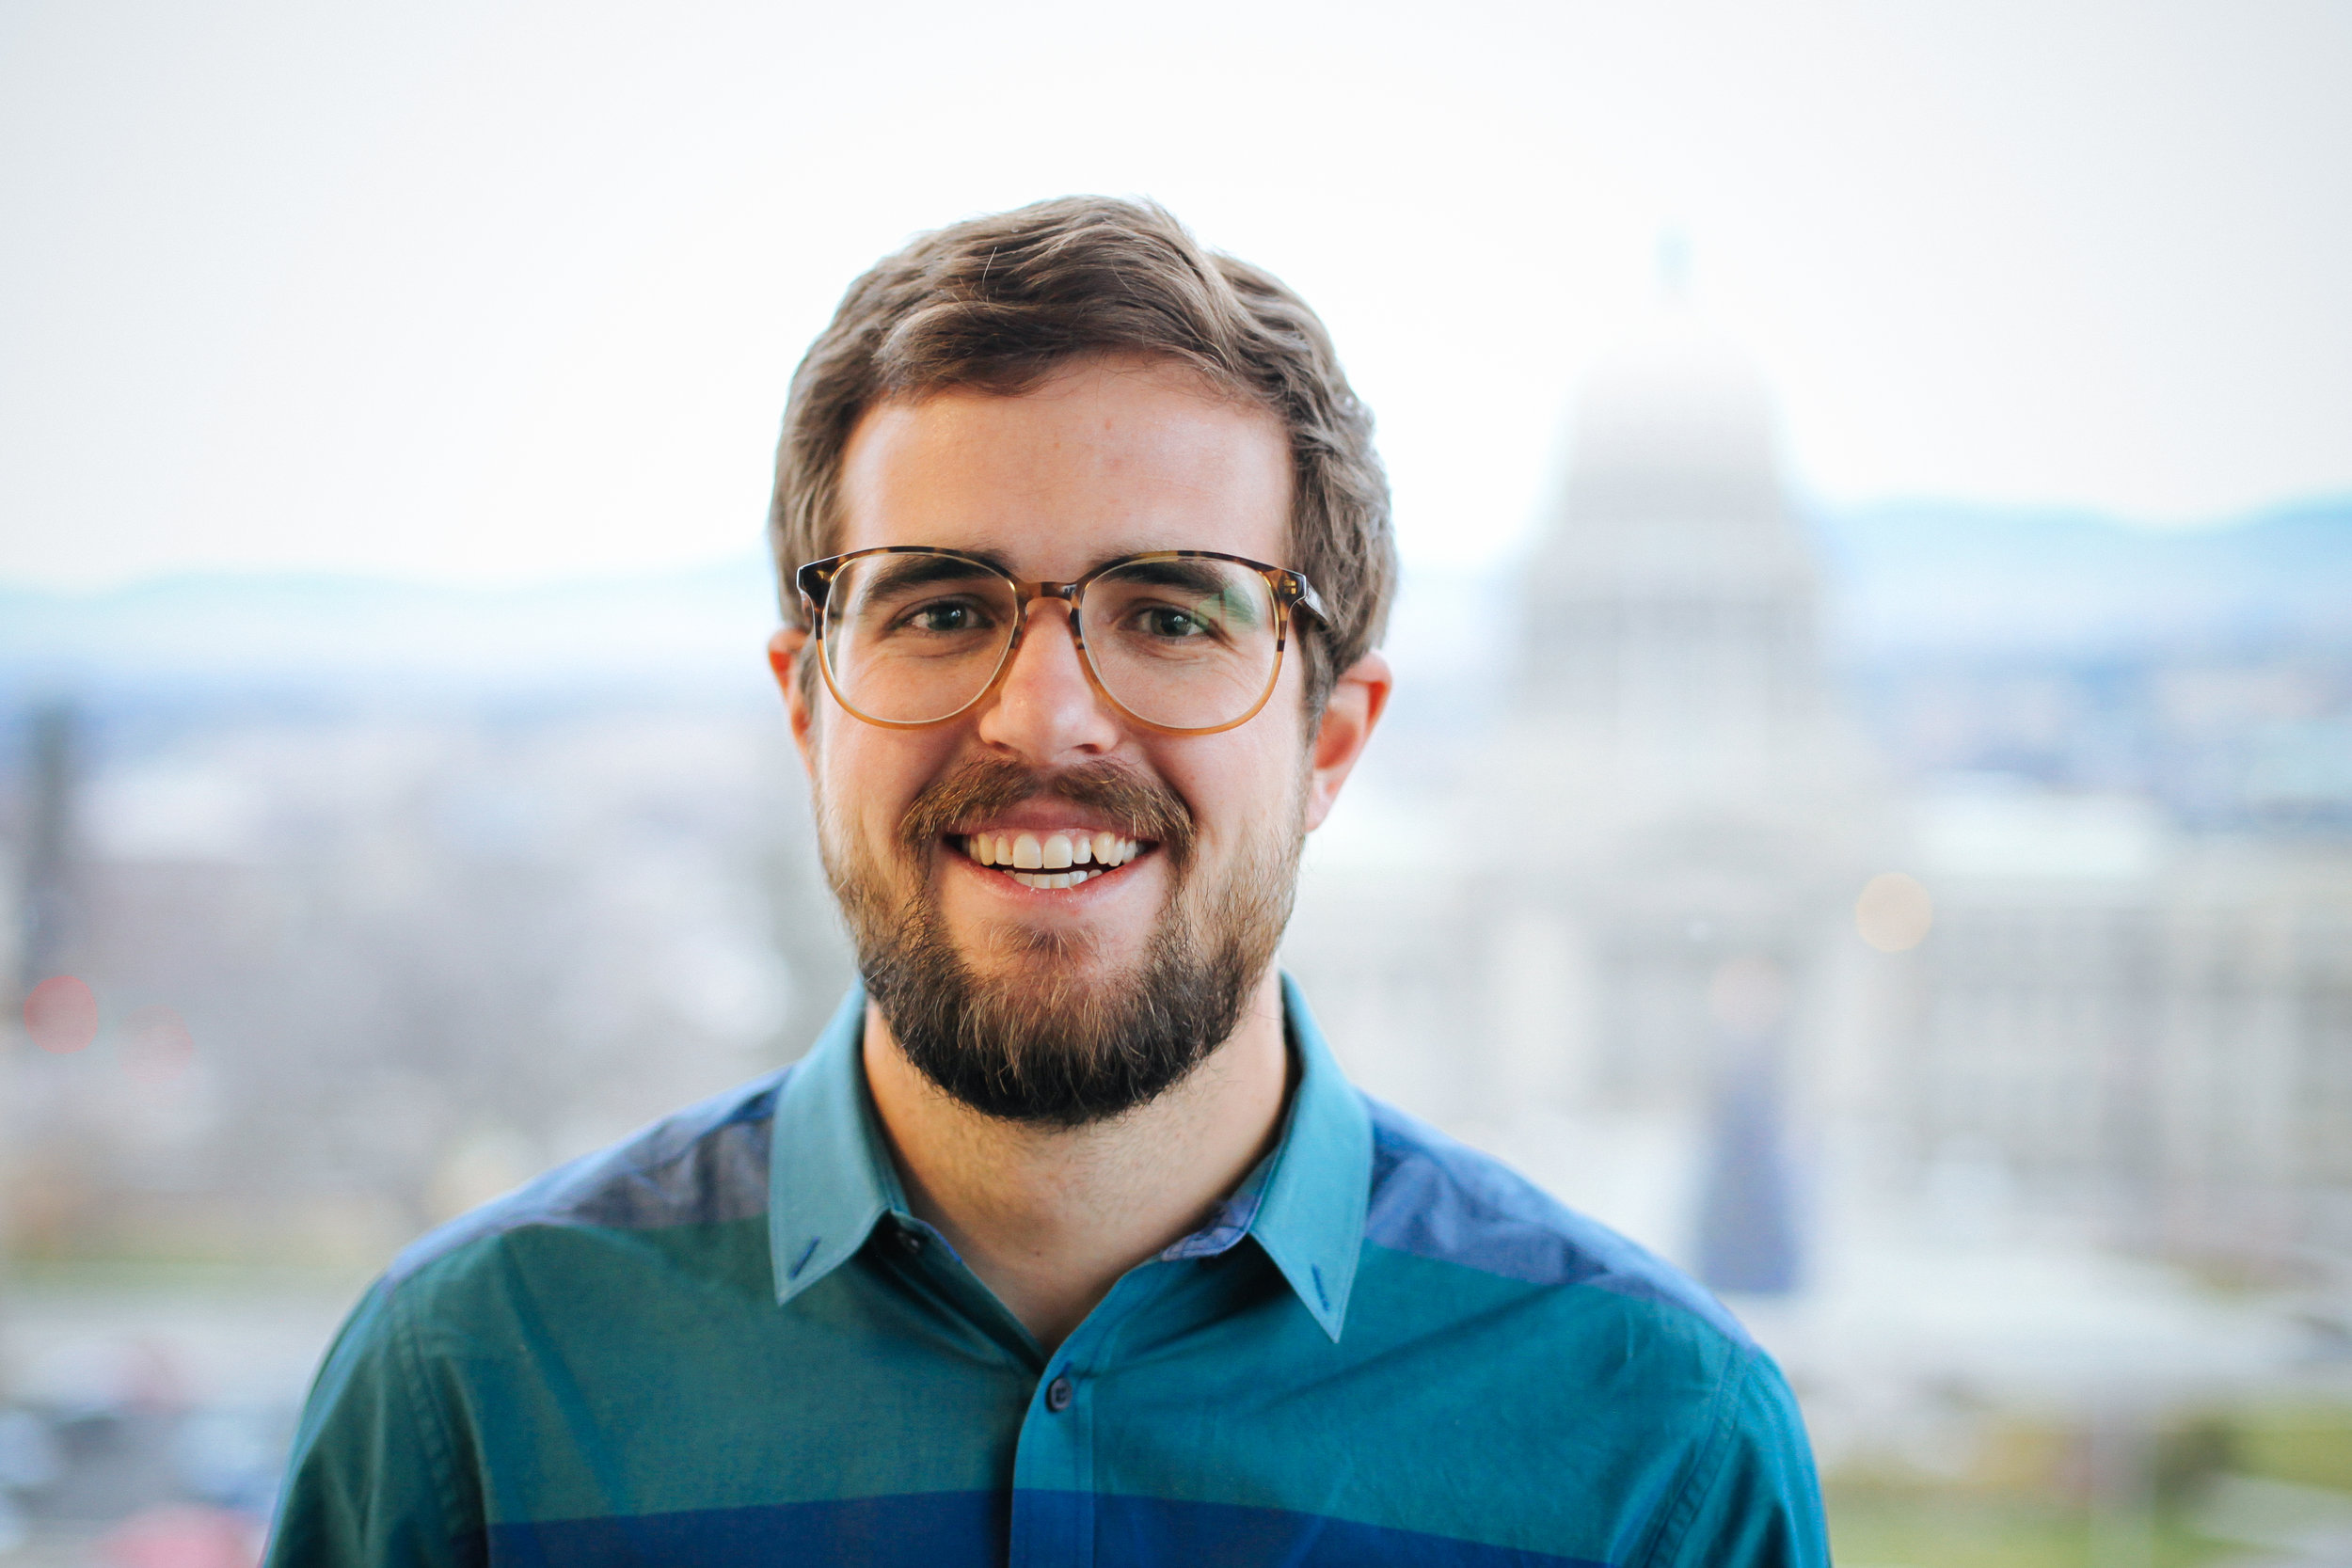 TRAVIS HALL | DIRECTOR, DATA SCIENCE